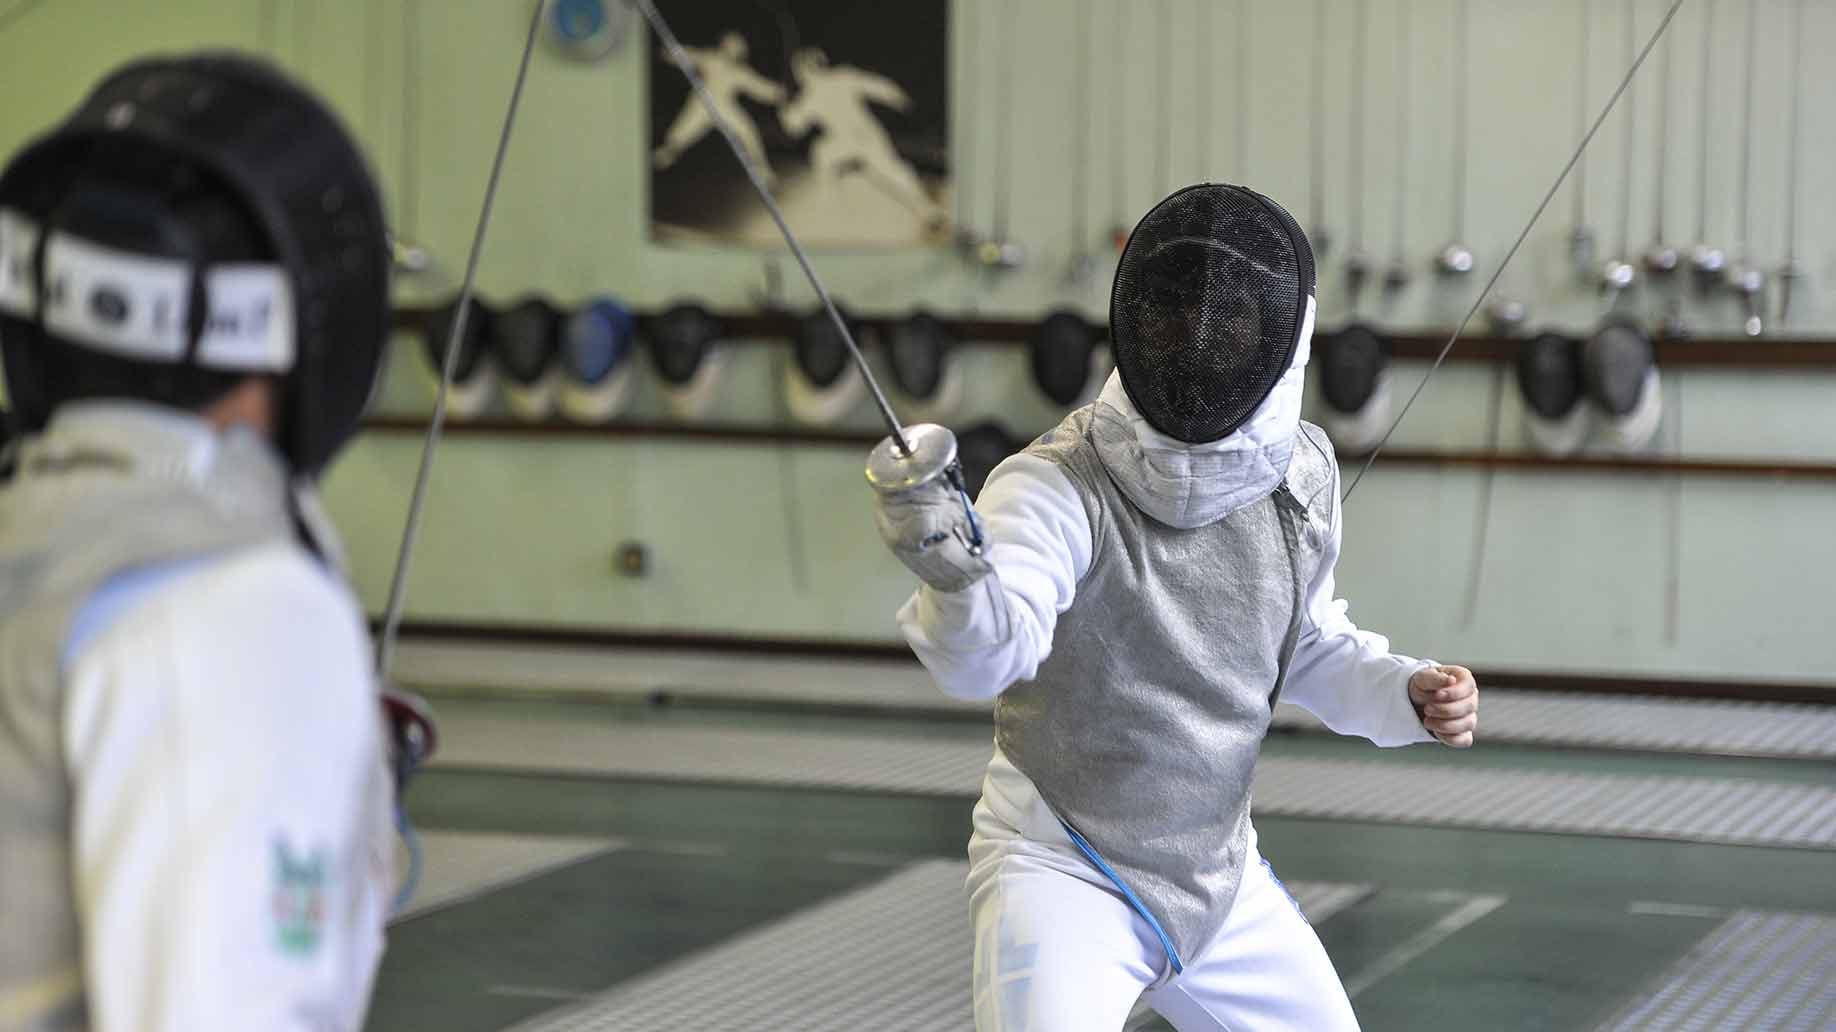 fencing equipment lessons